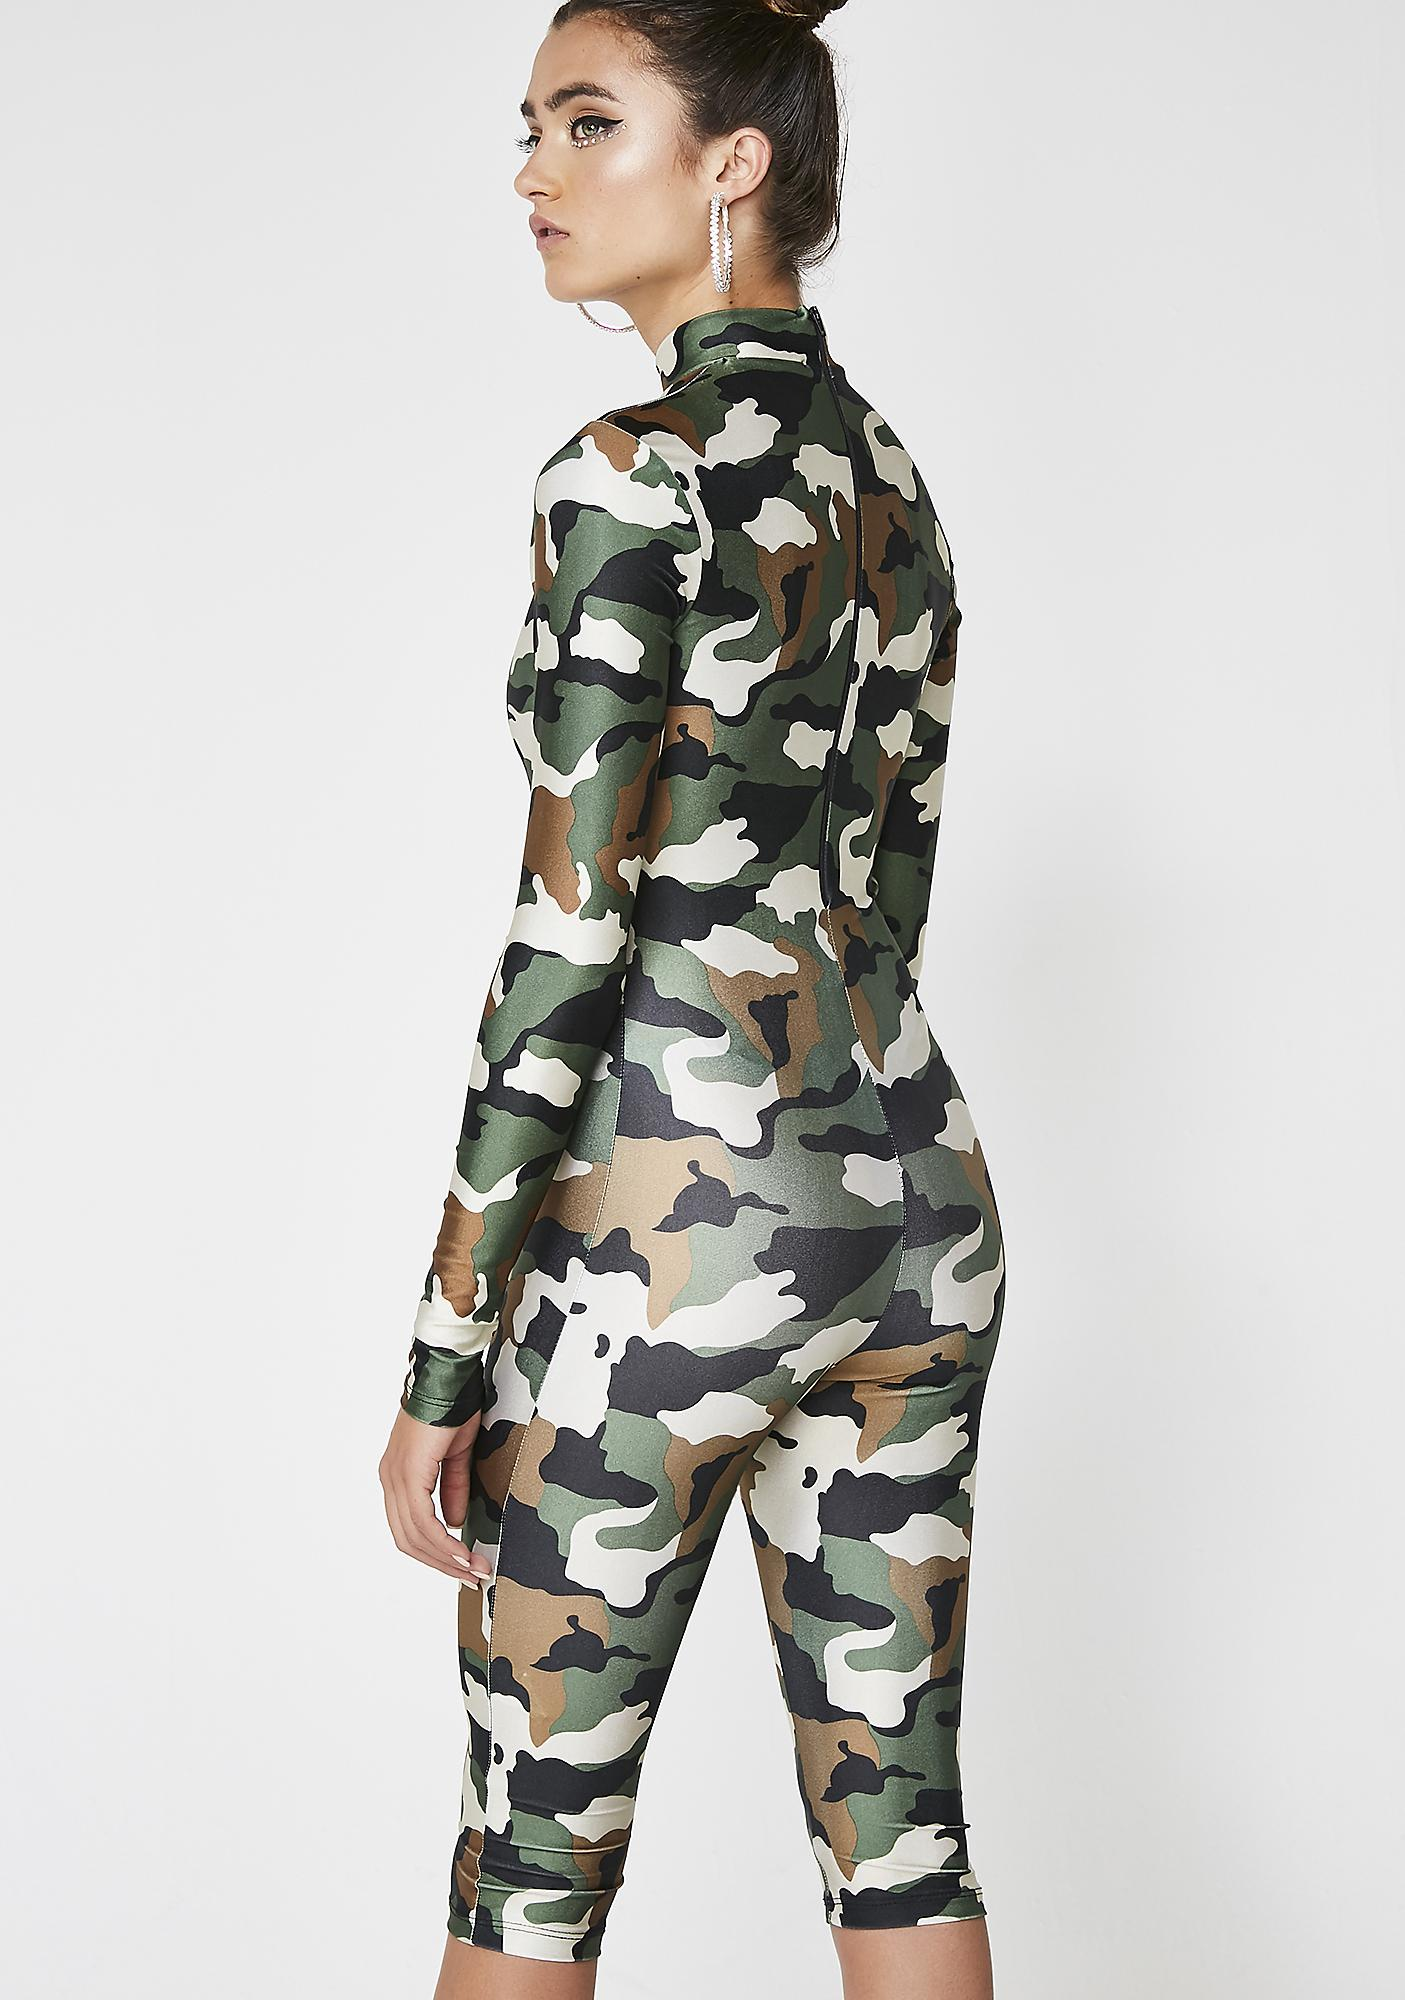 Take Yo Man Camo Jumpsuit